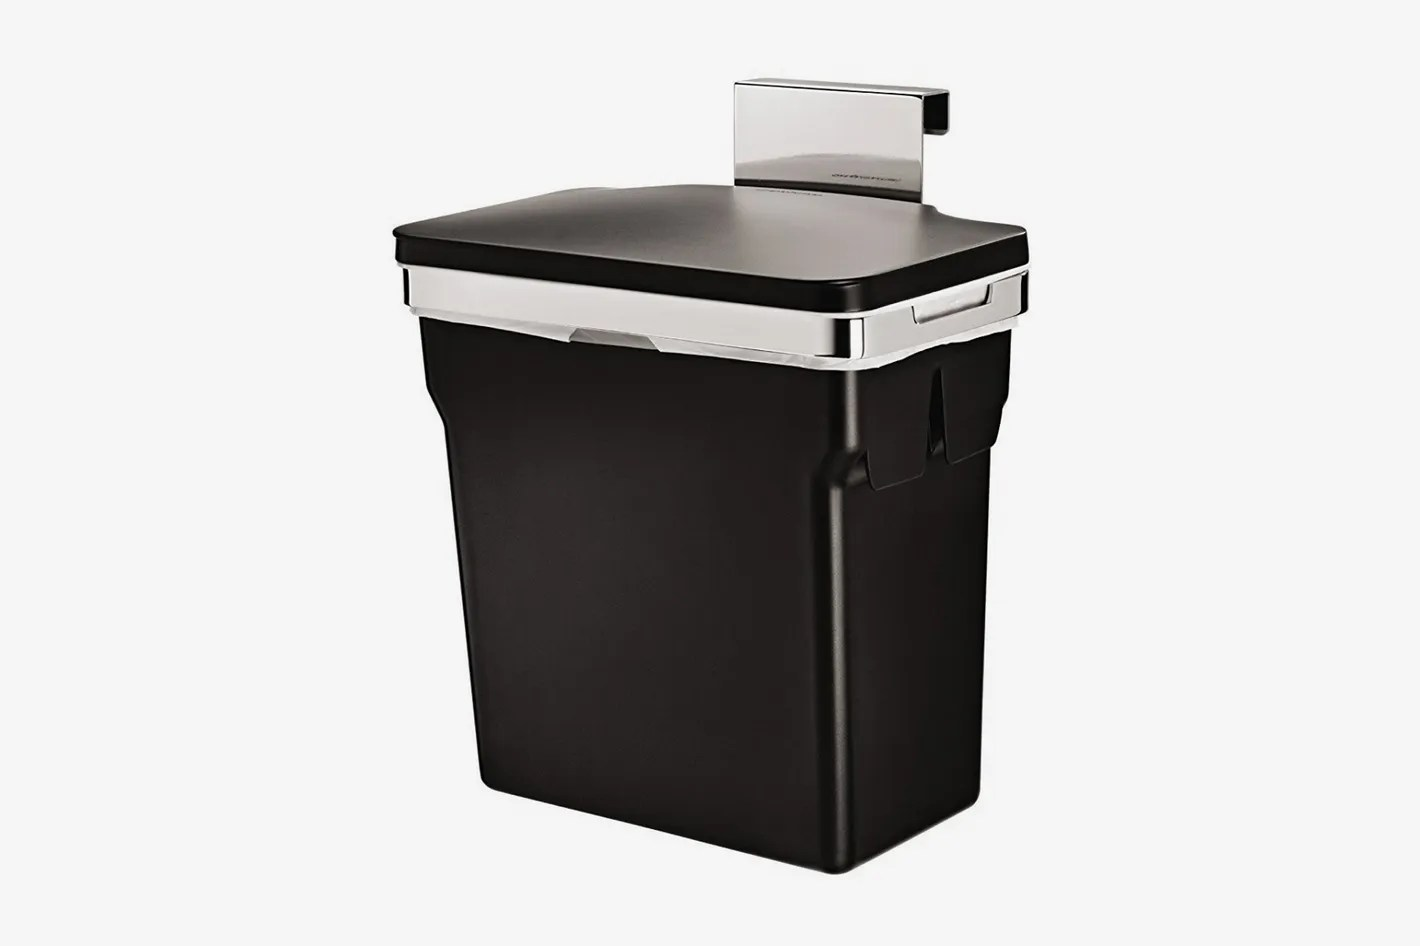 Copper Trash Can With Lid 5 Best Kitchen Trash Cans According To Pro Home Cooks 2018